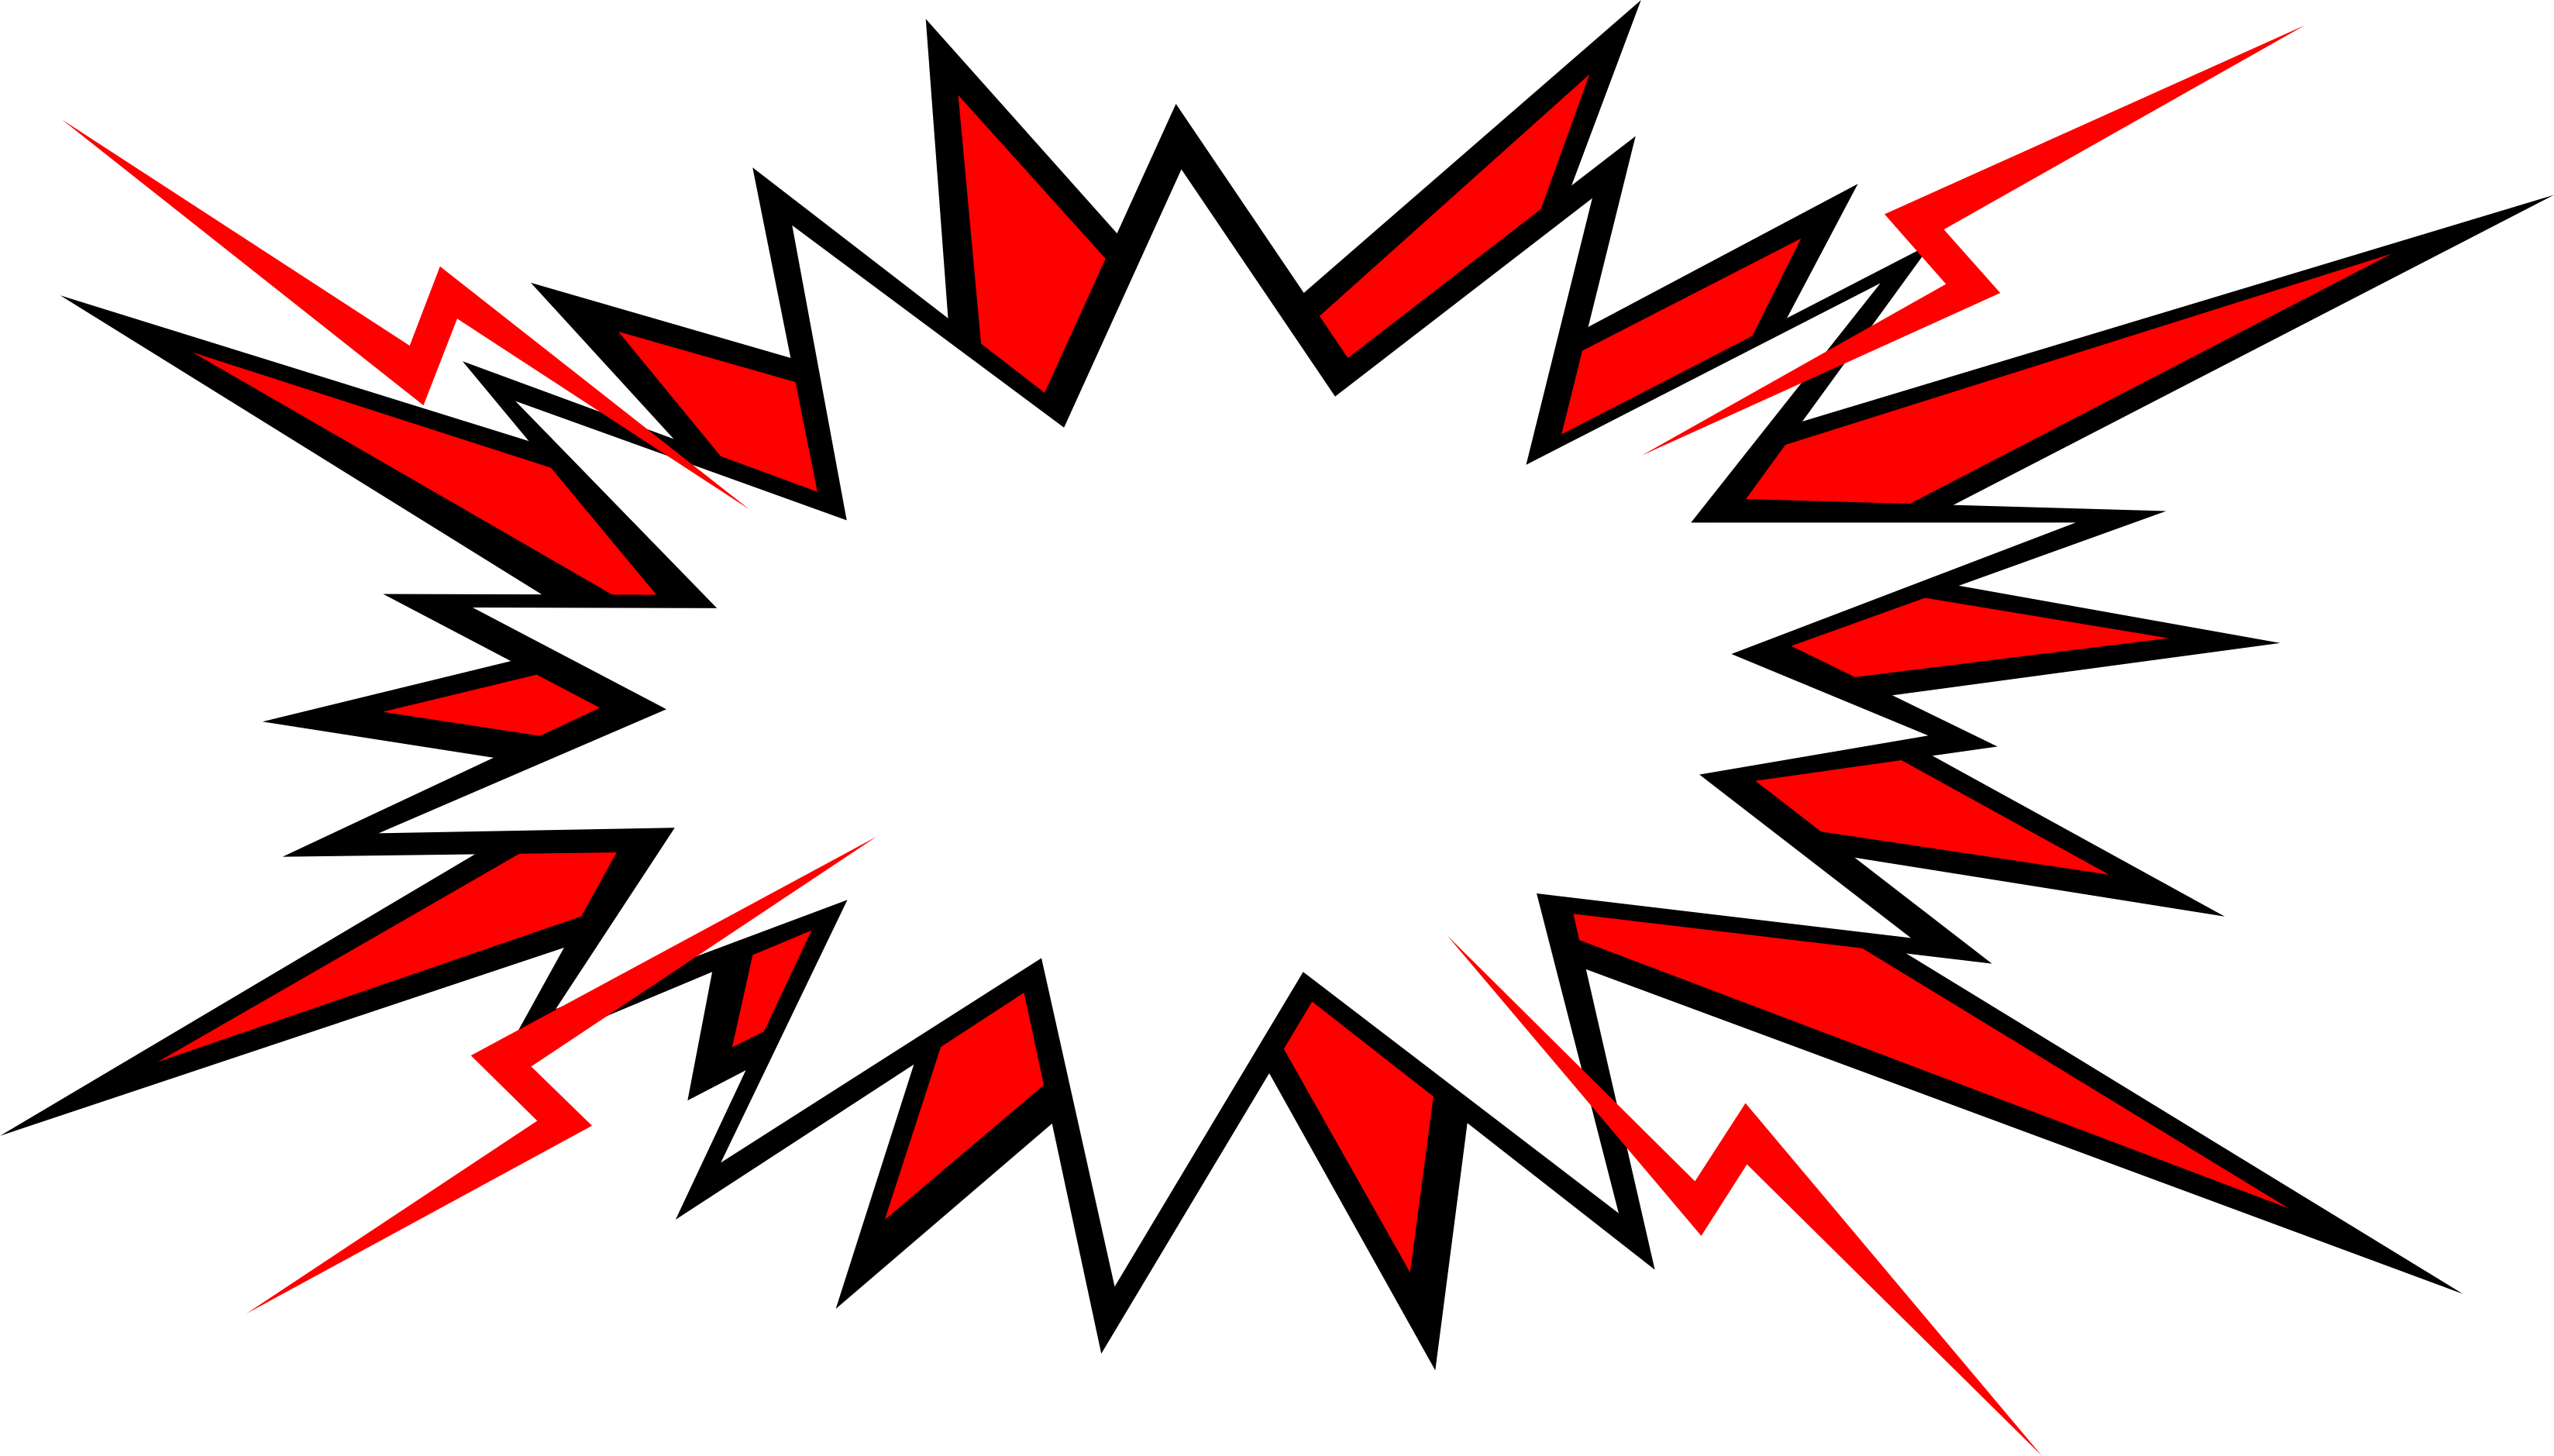 20 Comic Boom Explosion Vector (PNG Transparent, SVG) Vol. 2.